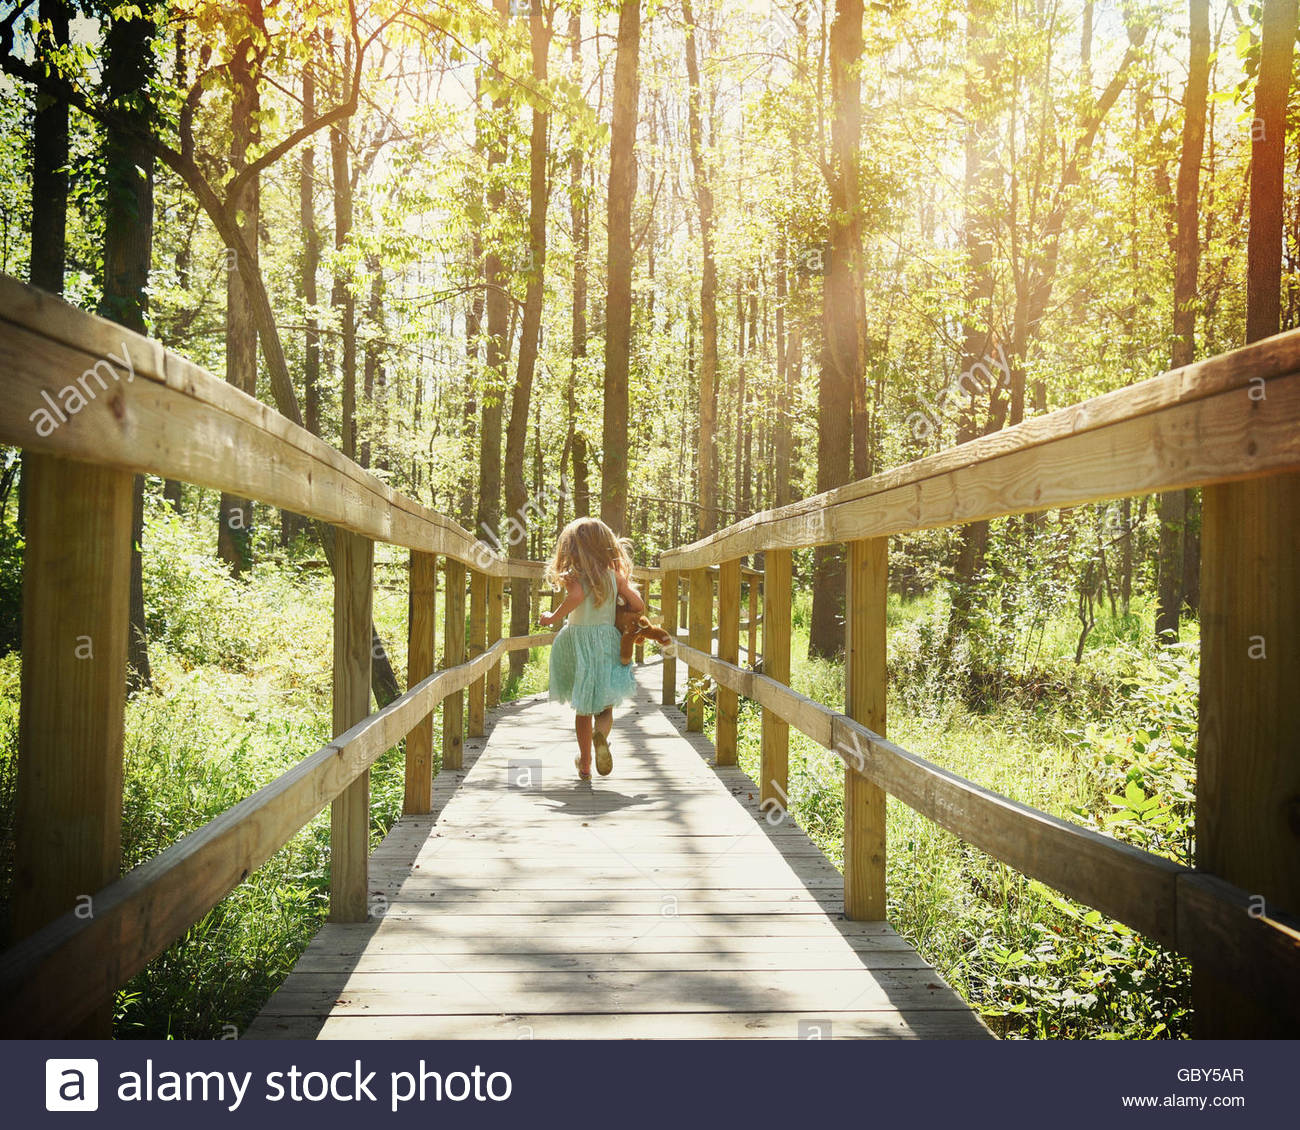 A little child is running on a wooden trail in the woods with trees with sunlight rays for a freedom or adventure - Stock Image